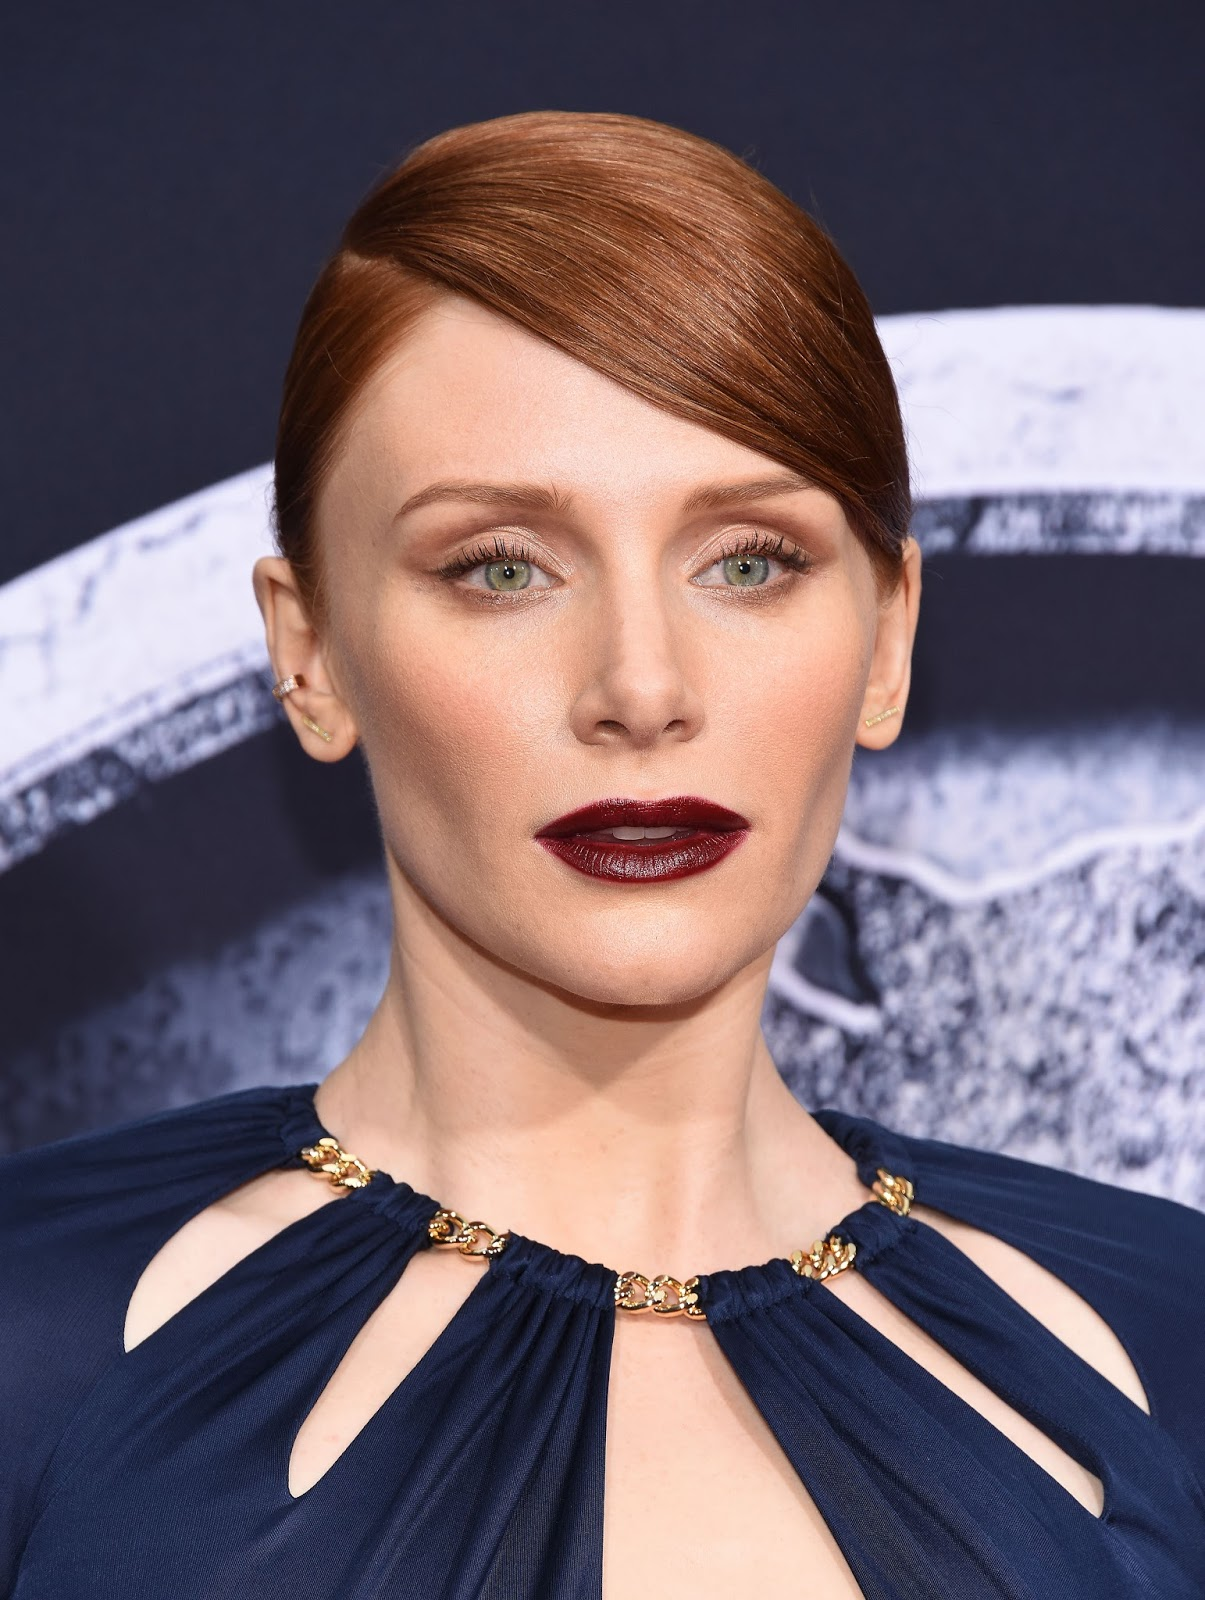 Bryce Dallas Howard at Jurassic World premiere HD Photos, Images & Wallpapers